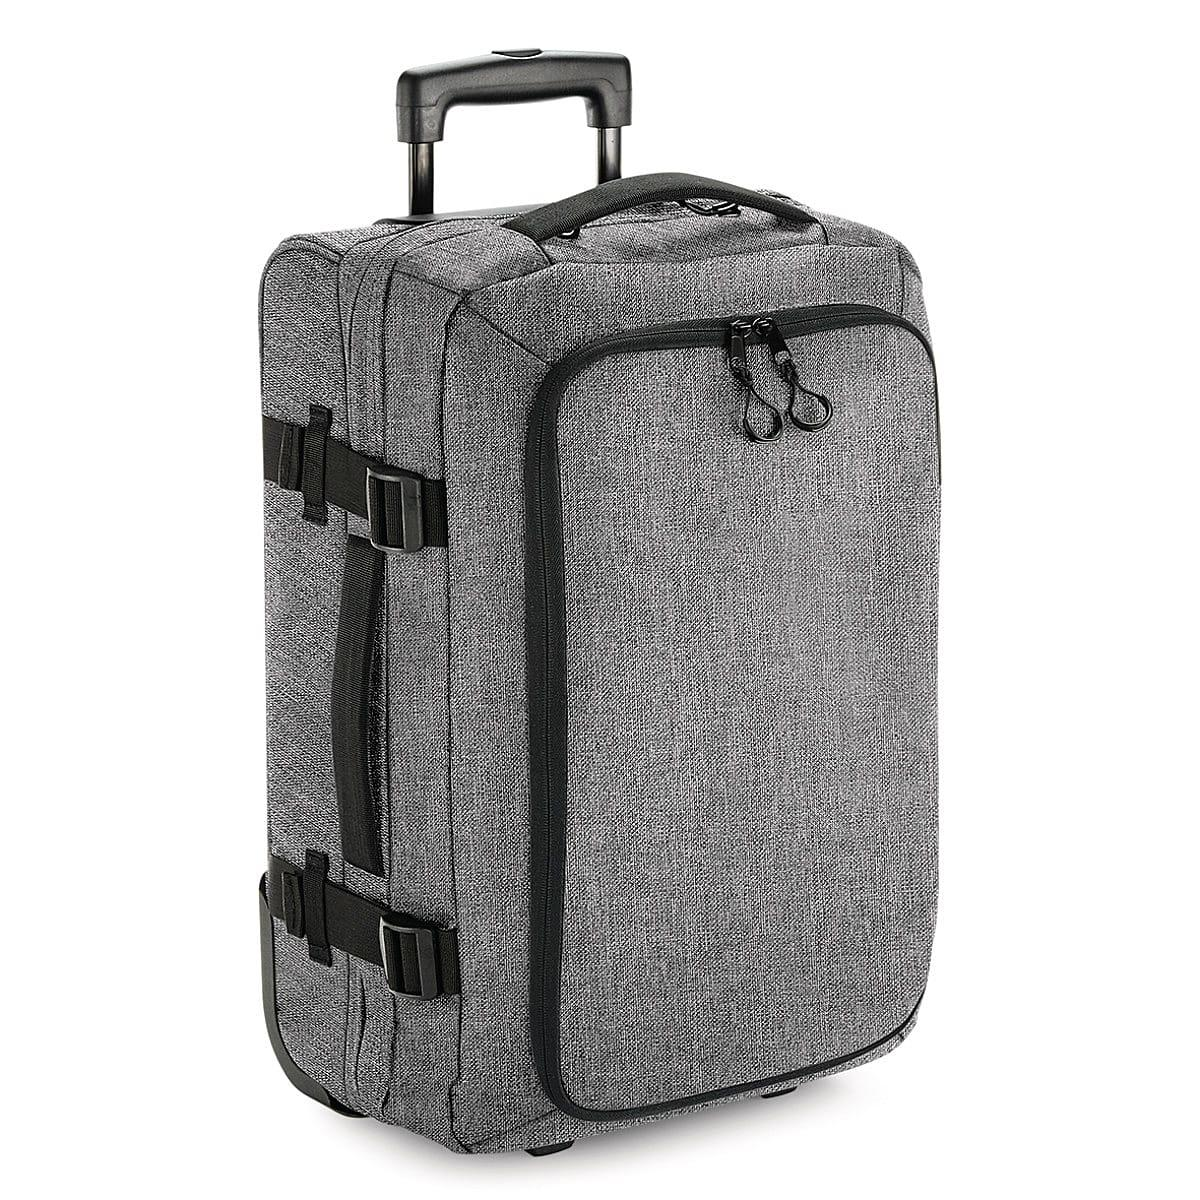 Bagbase Bagbse Escape Carry On Wheelie in Grey Marl (Product Code: BG481)